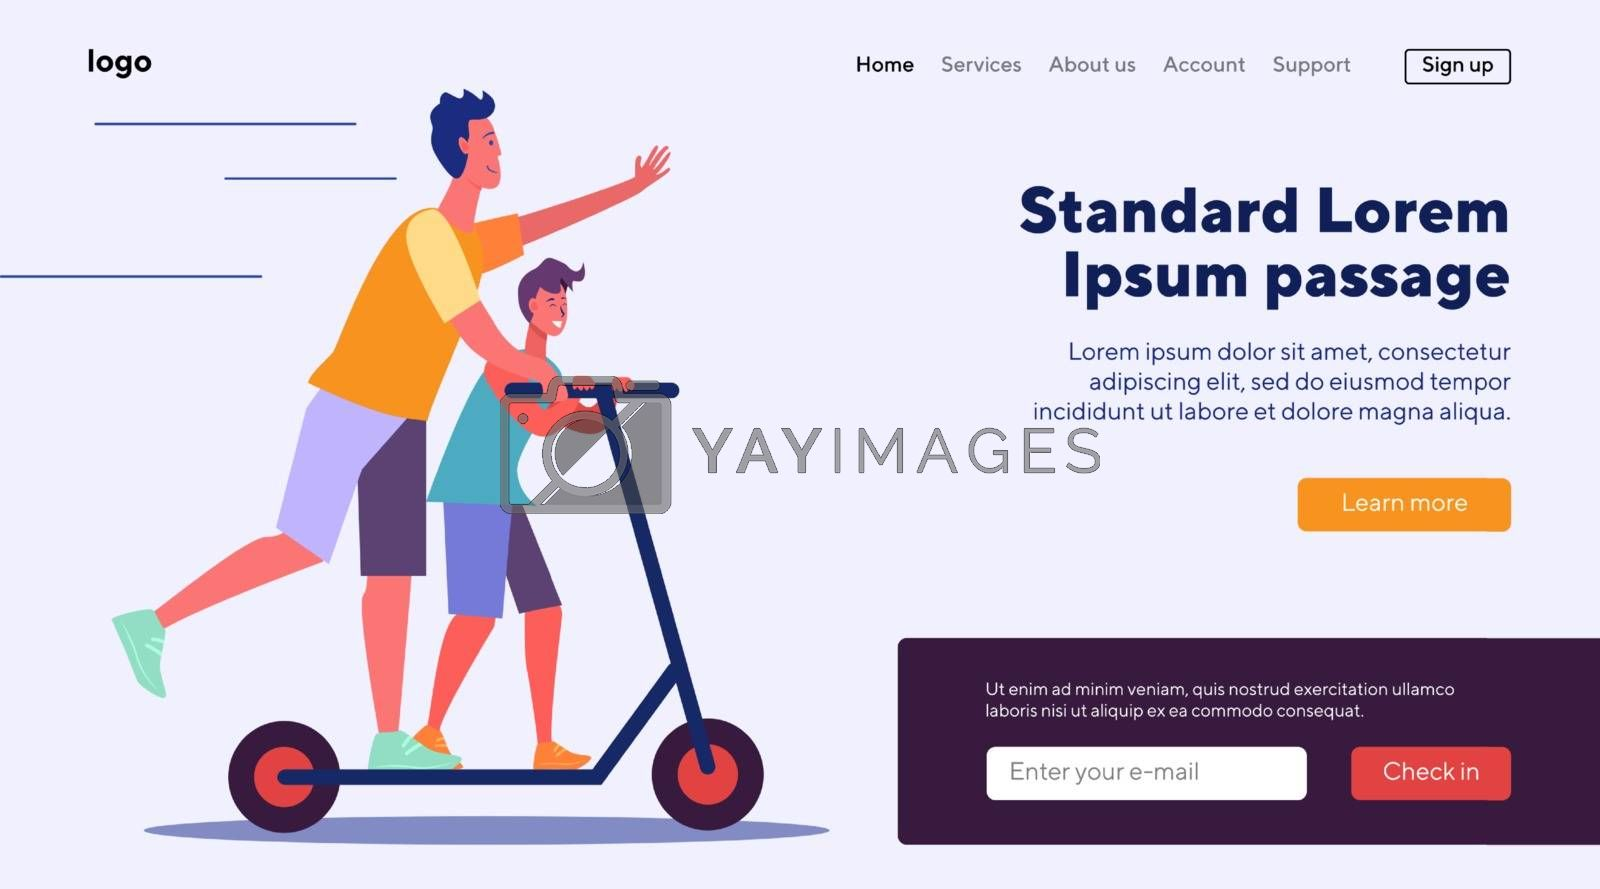 Father and son riding scooter. Elder and younger brother having fun flat vector illustration. Leisure, sport activities concept for banner, website design or landing web page